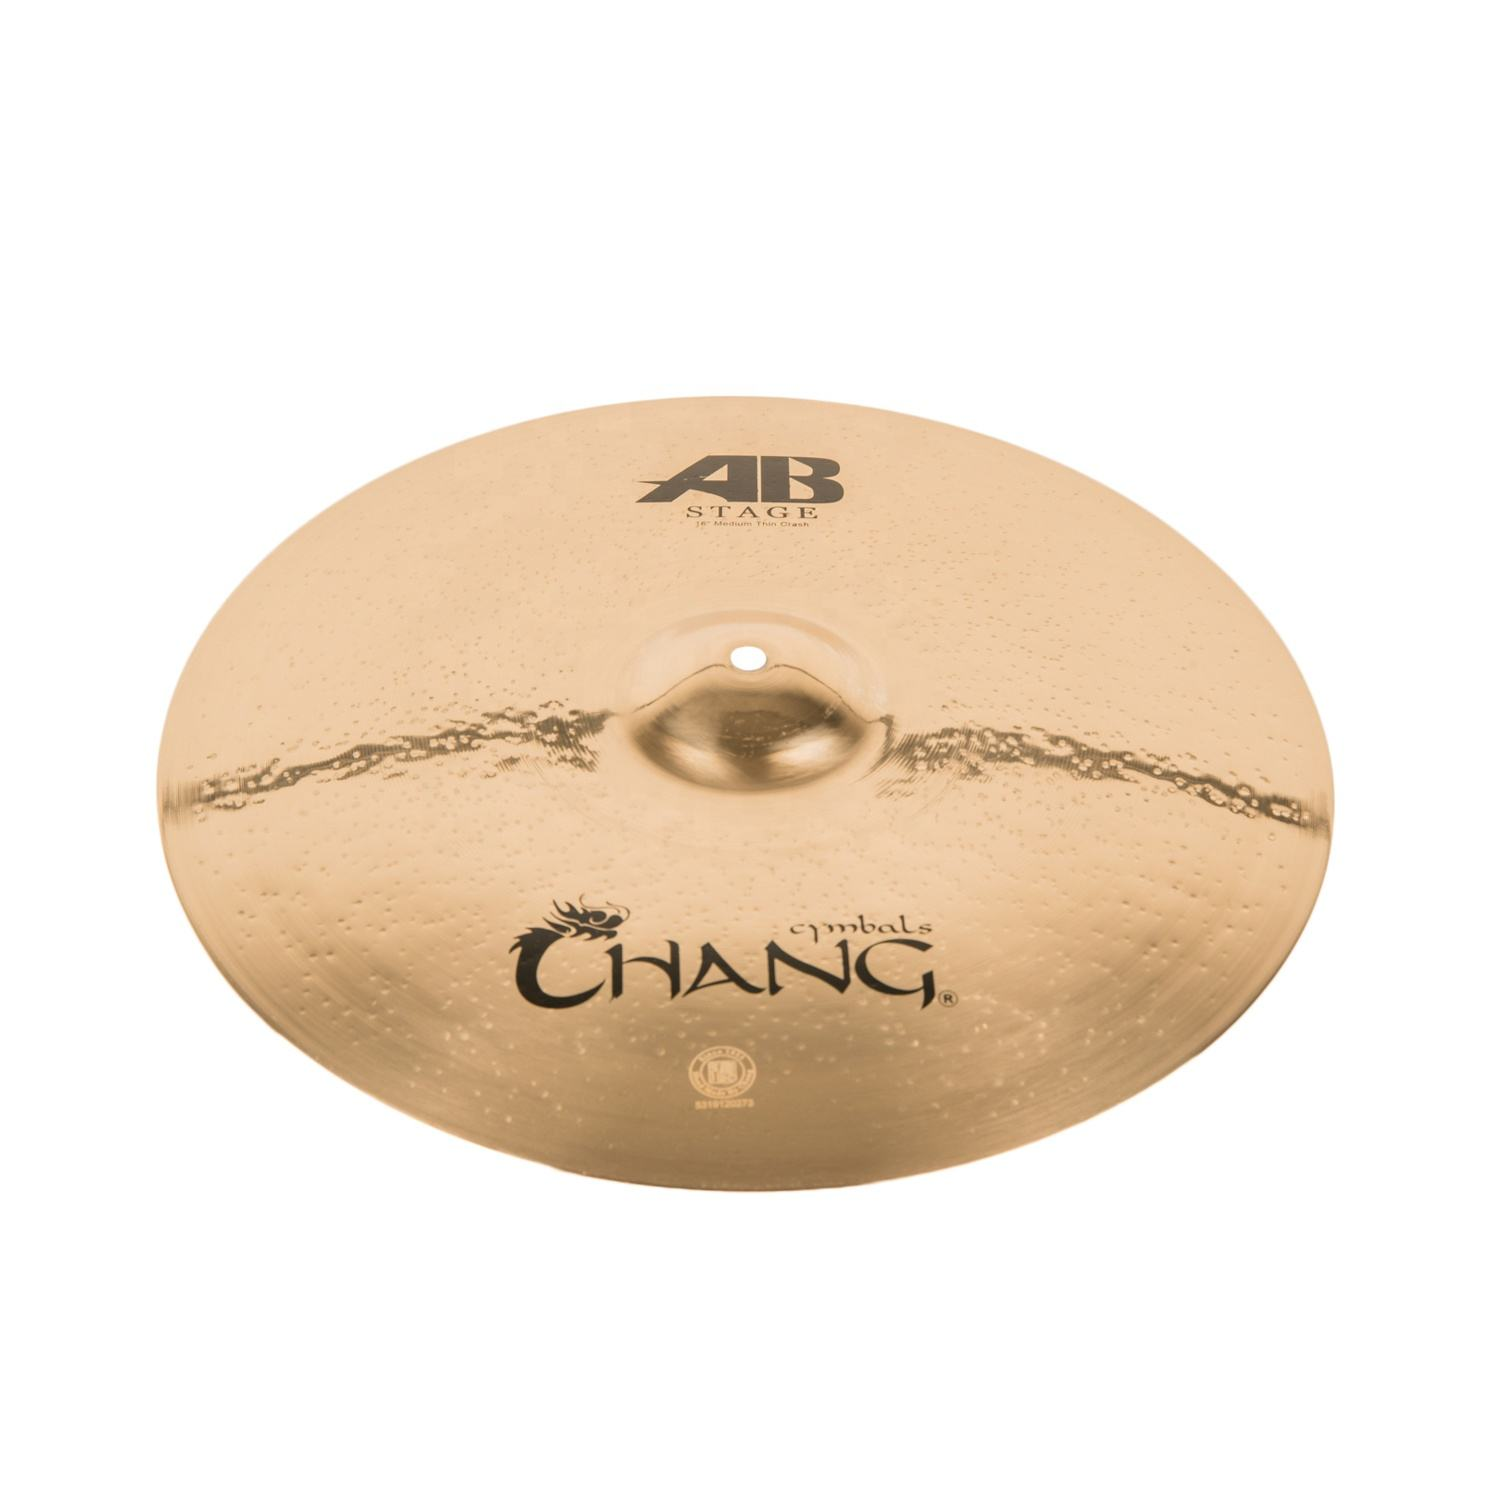 "Chang Popular B20 AB Stage 18"" Crash Cymbals Percussion Accessories"